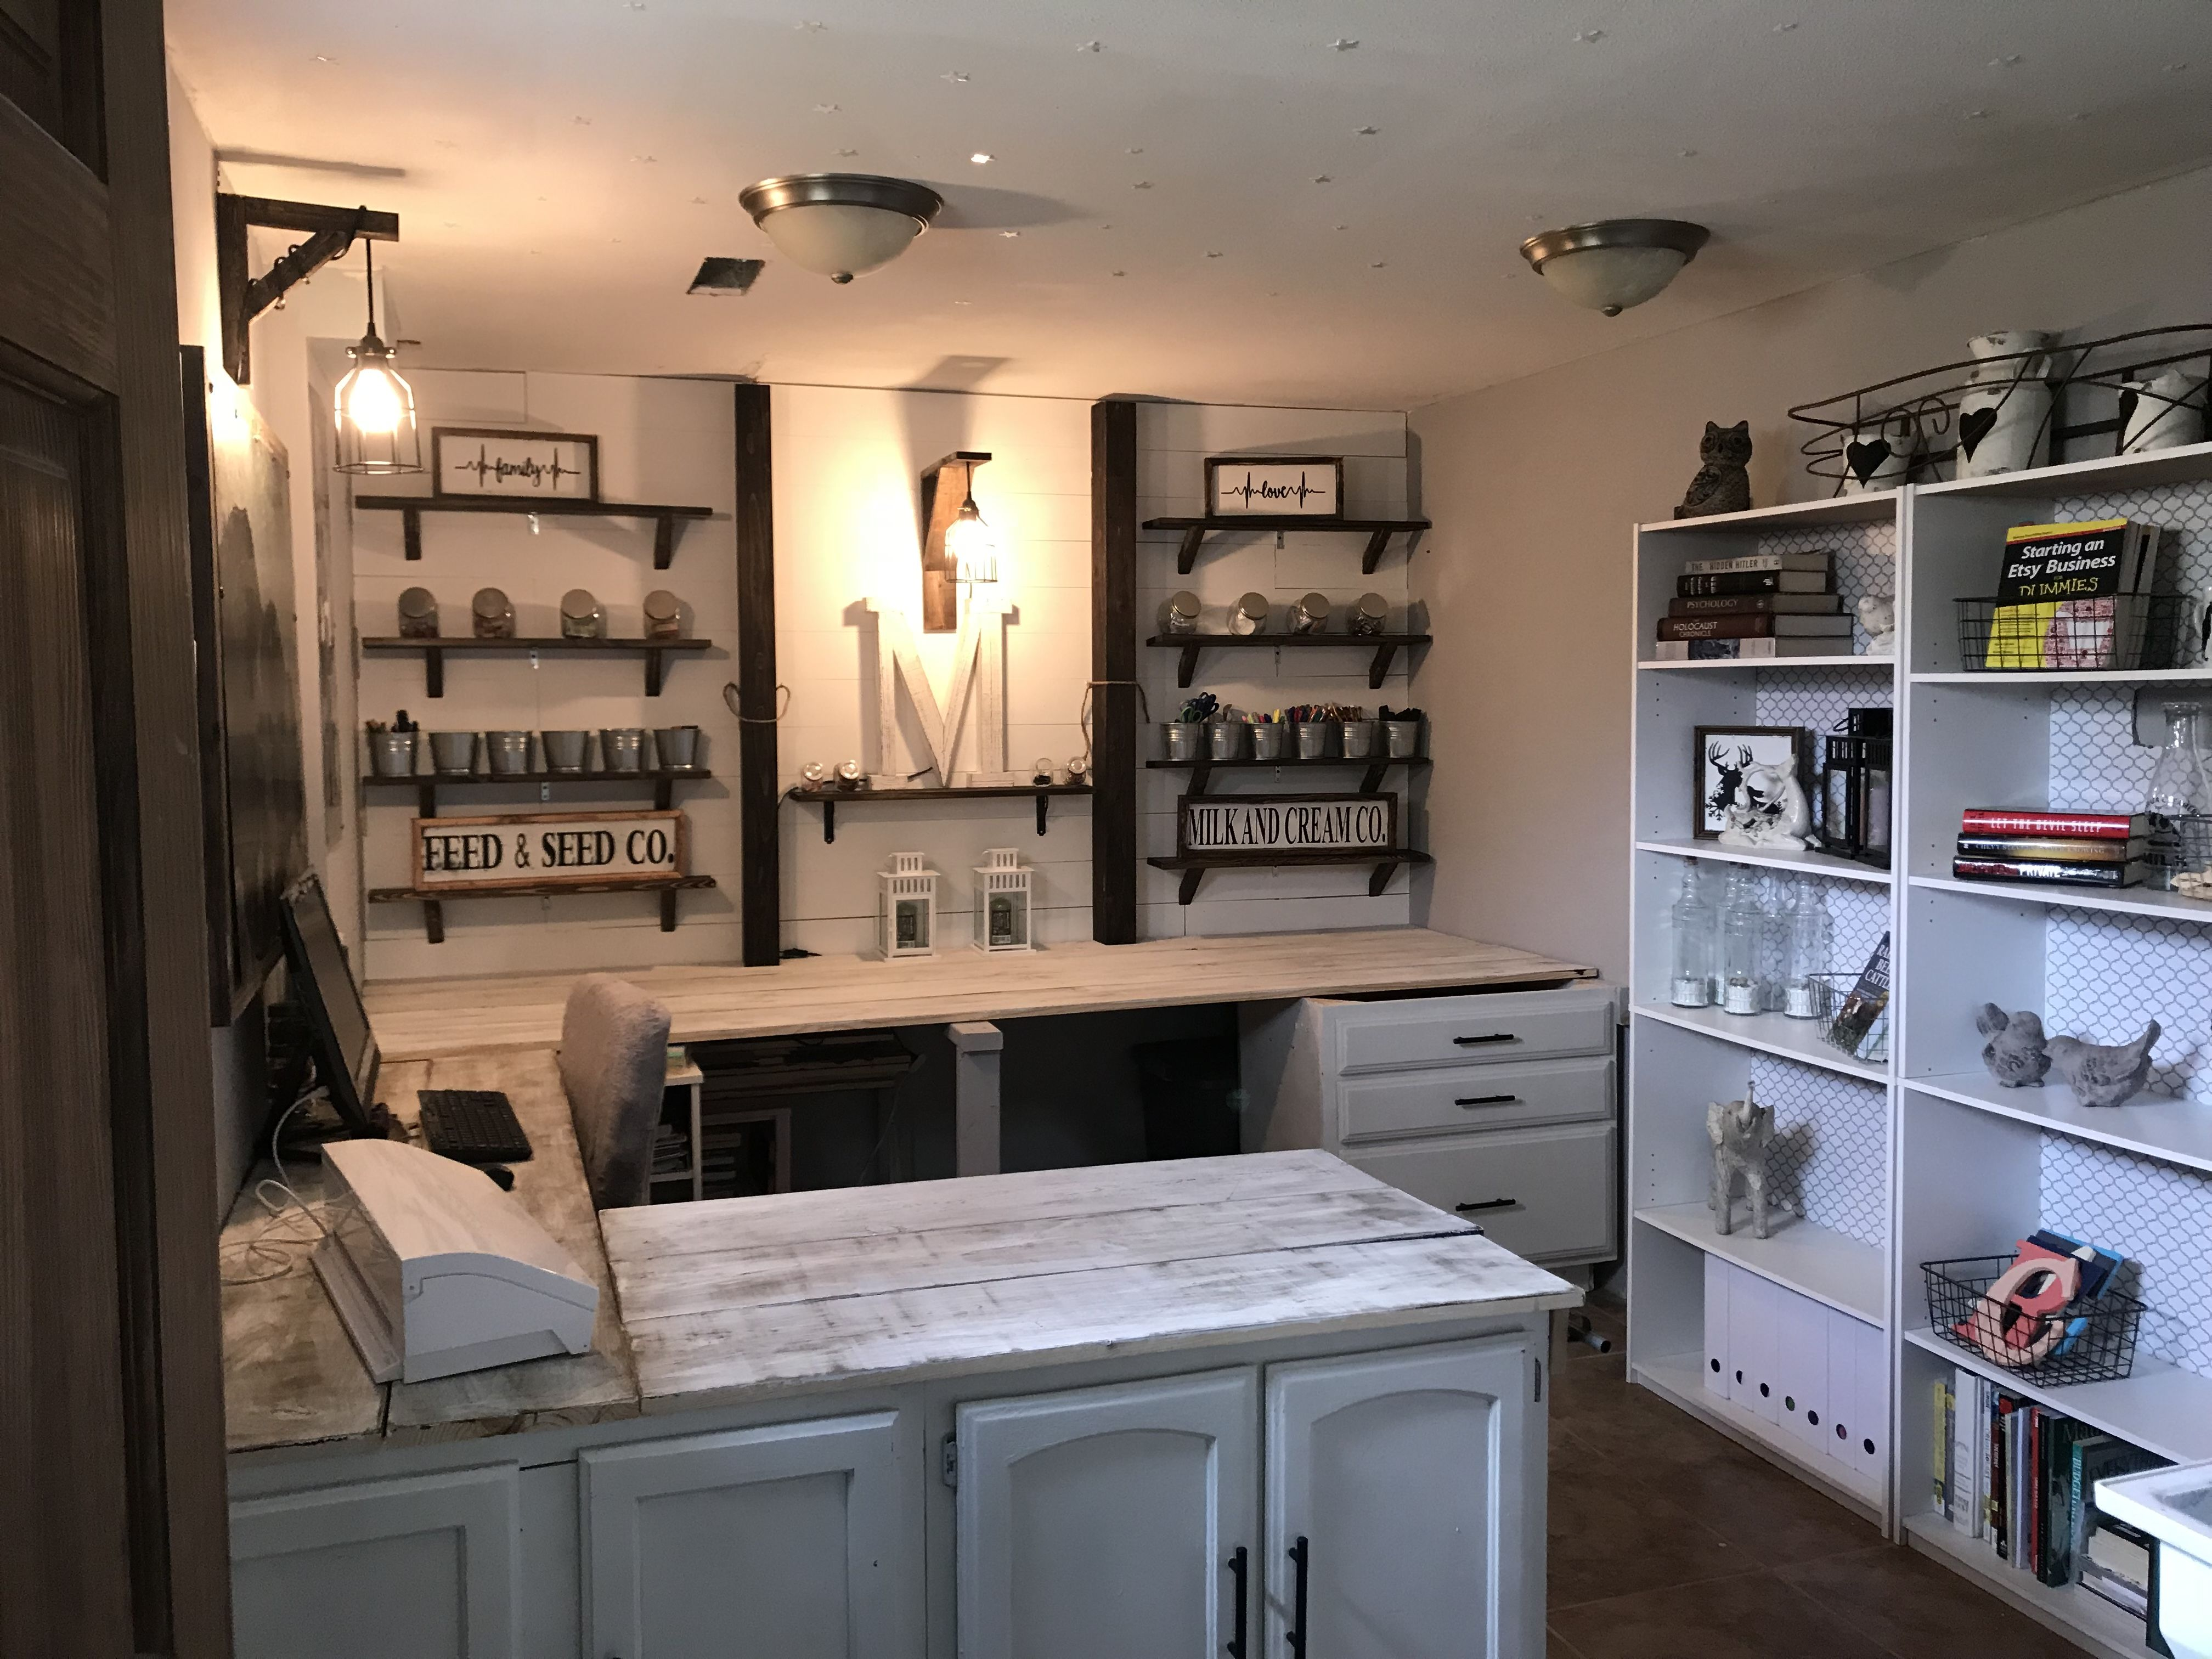 Pin By Ashley Ann On Home Design Ideas In 2021 Craft Room Decor New Furniture Rustic Crafts